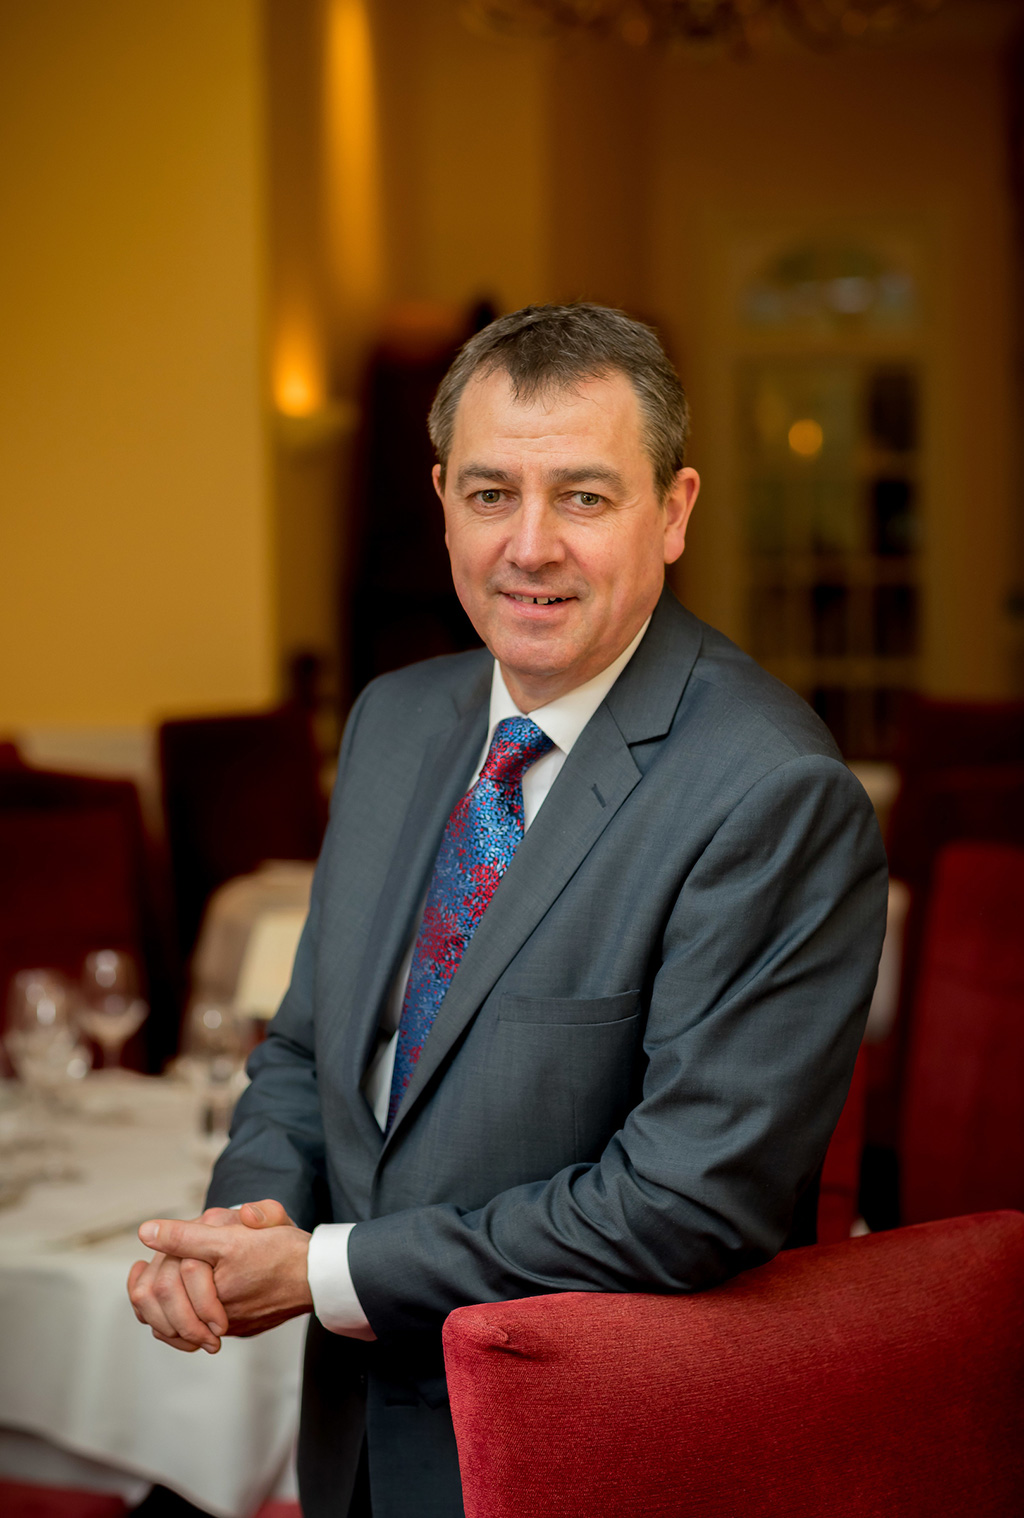 Martin Clegg, Our General Manager